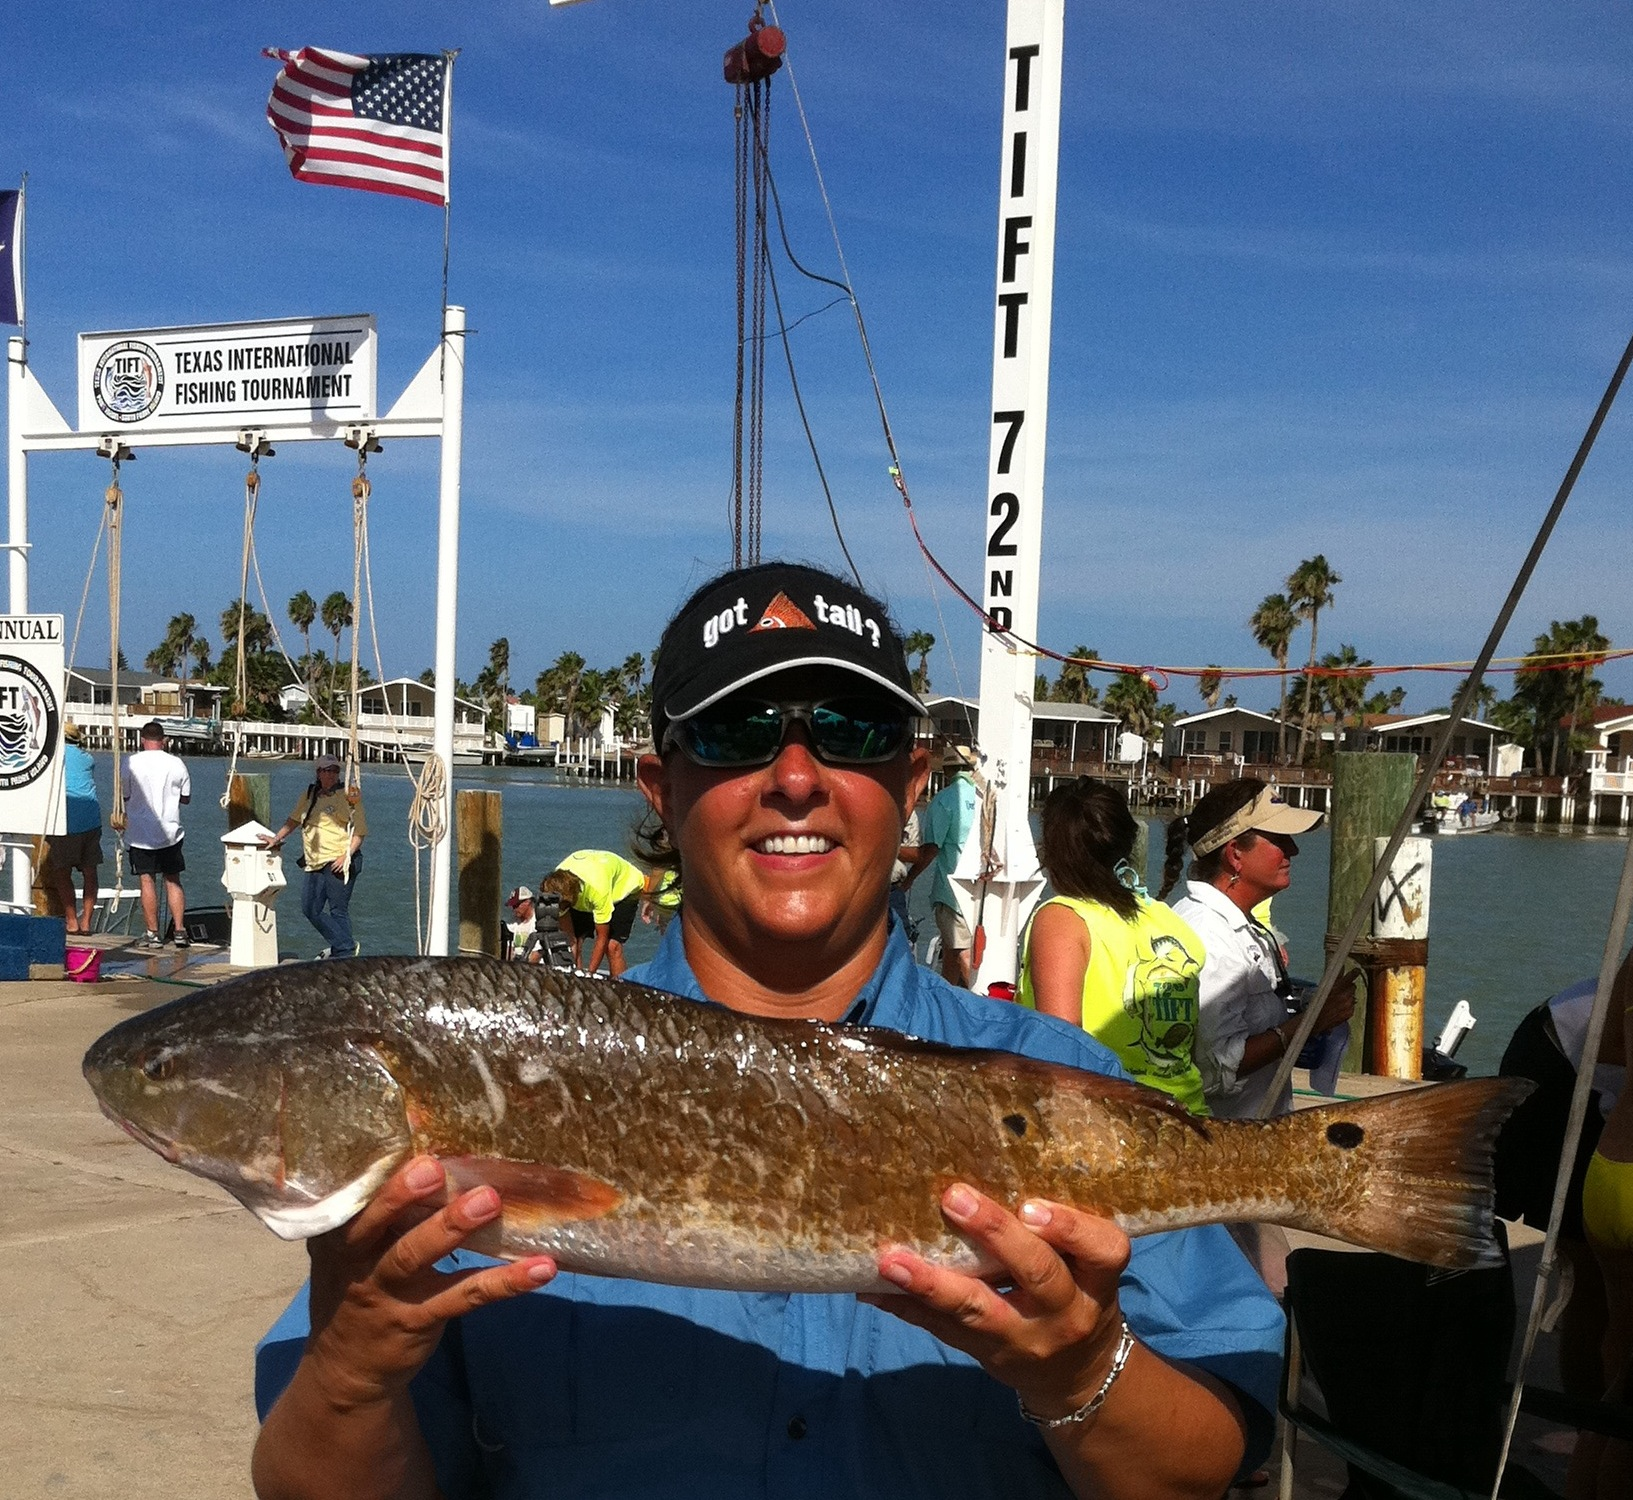 South padre and port isabel host tift july 31 to aug 4 for Fishing tournaments in texas